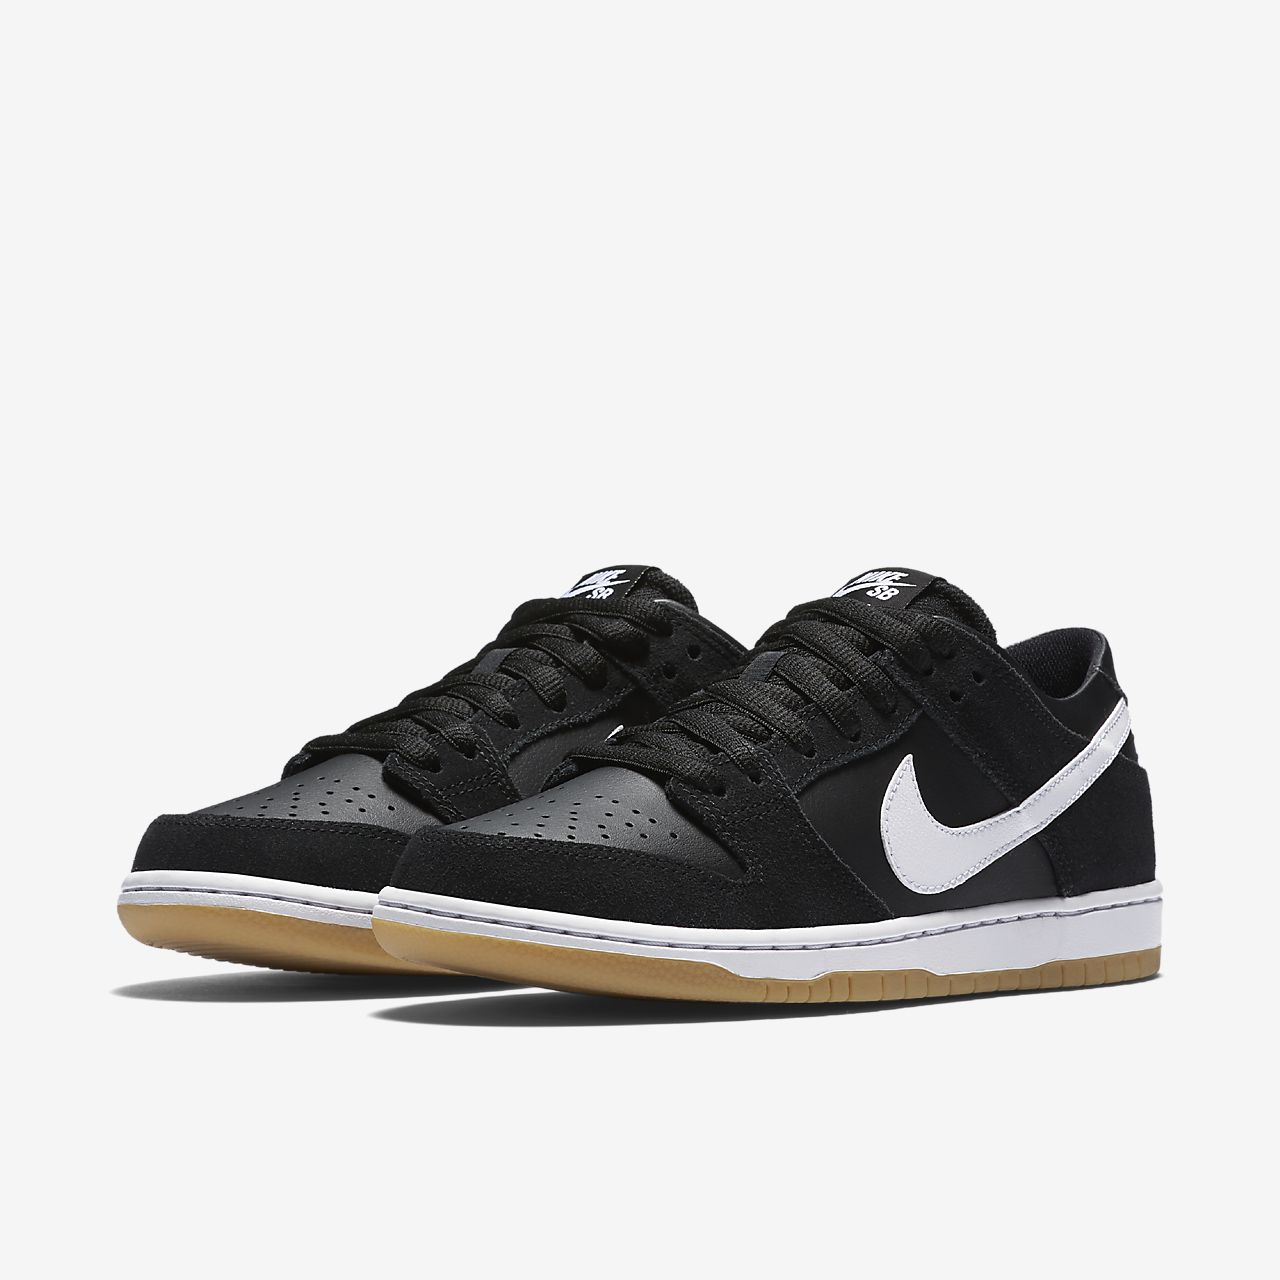 Discount Authentic Mens Nike Dunk Low Shoes Brown/White/Dark Brown